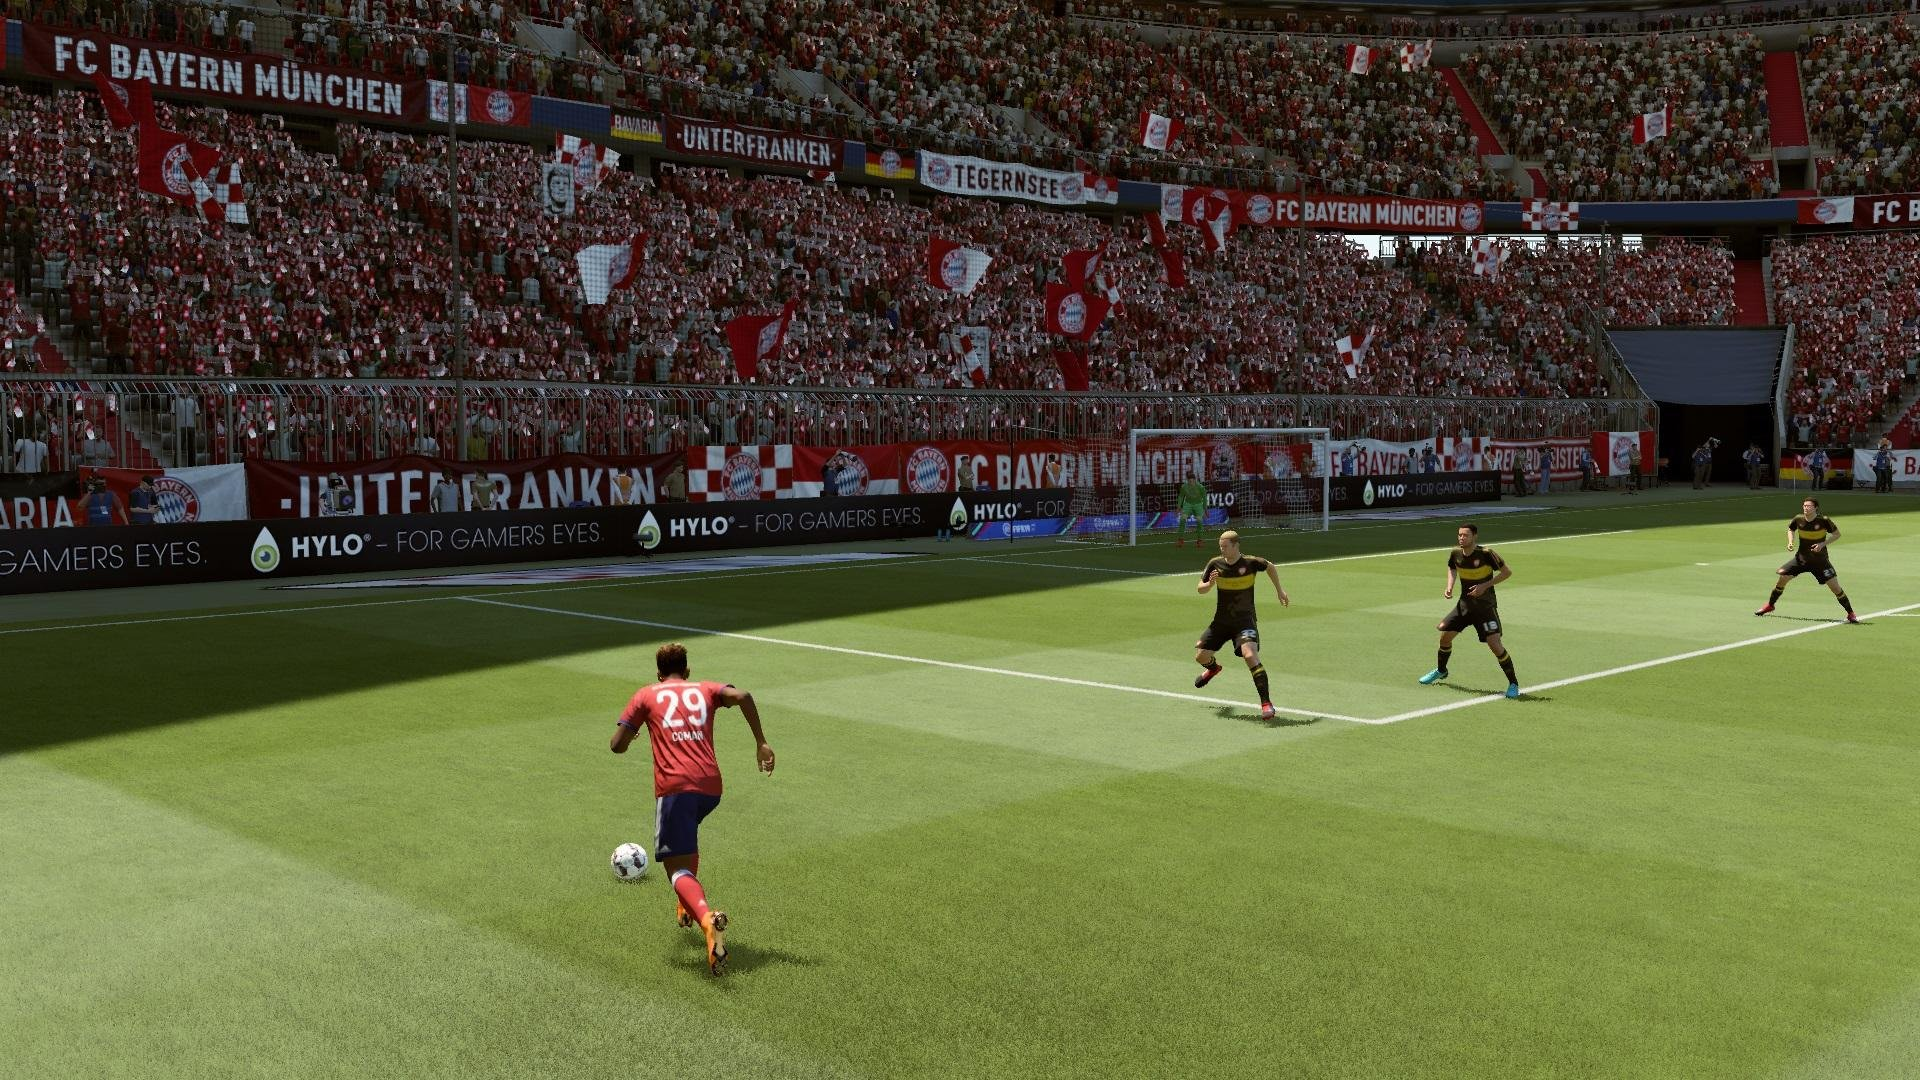 Chemistry styles such as Engine can increase Coman's acceleration to 99